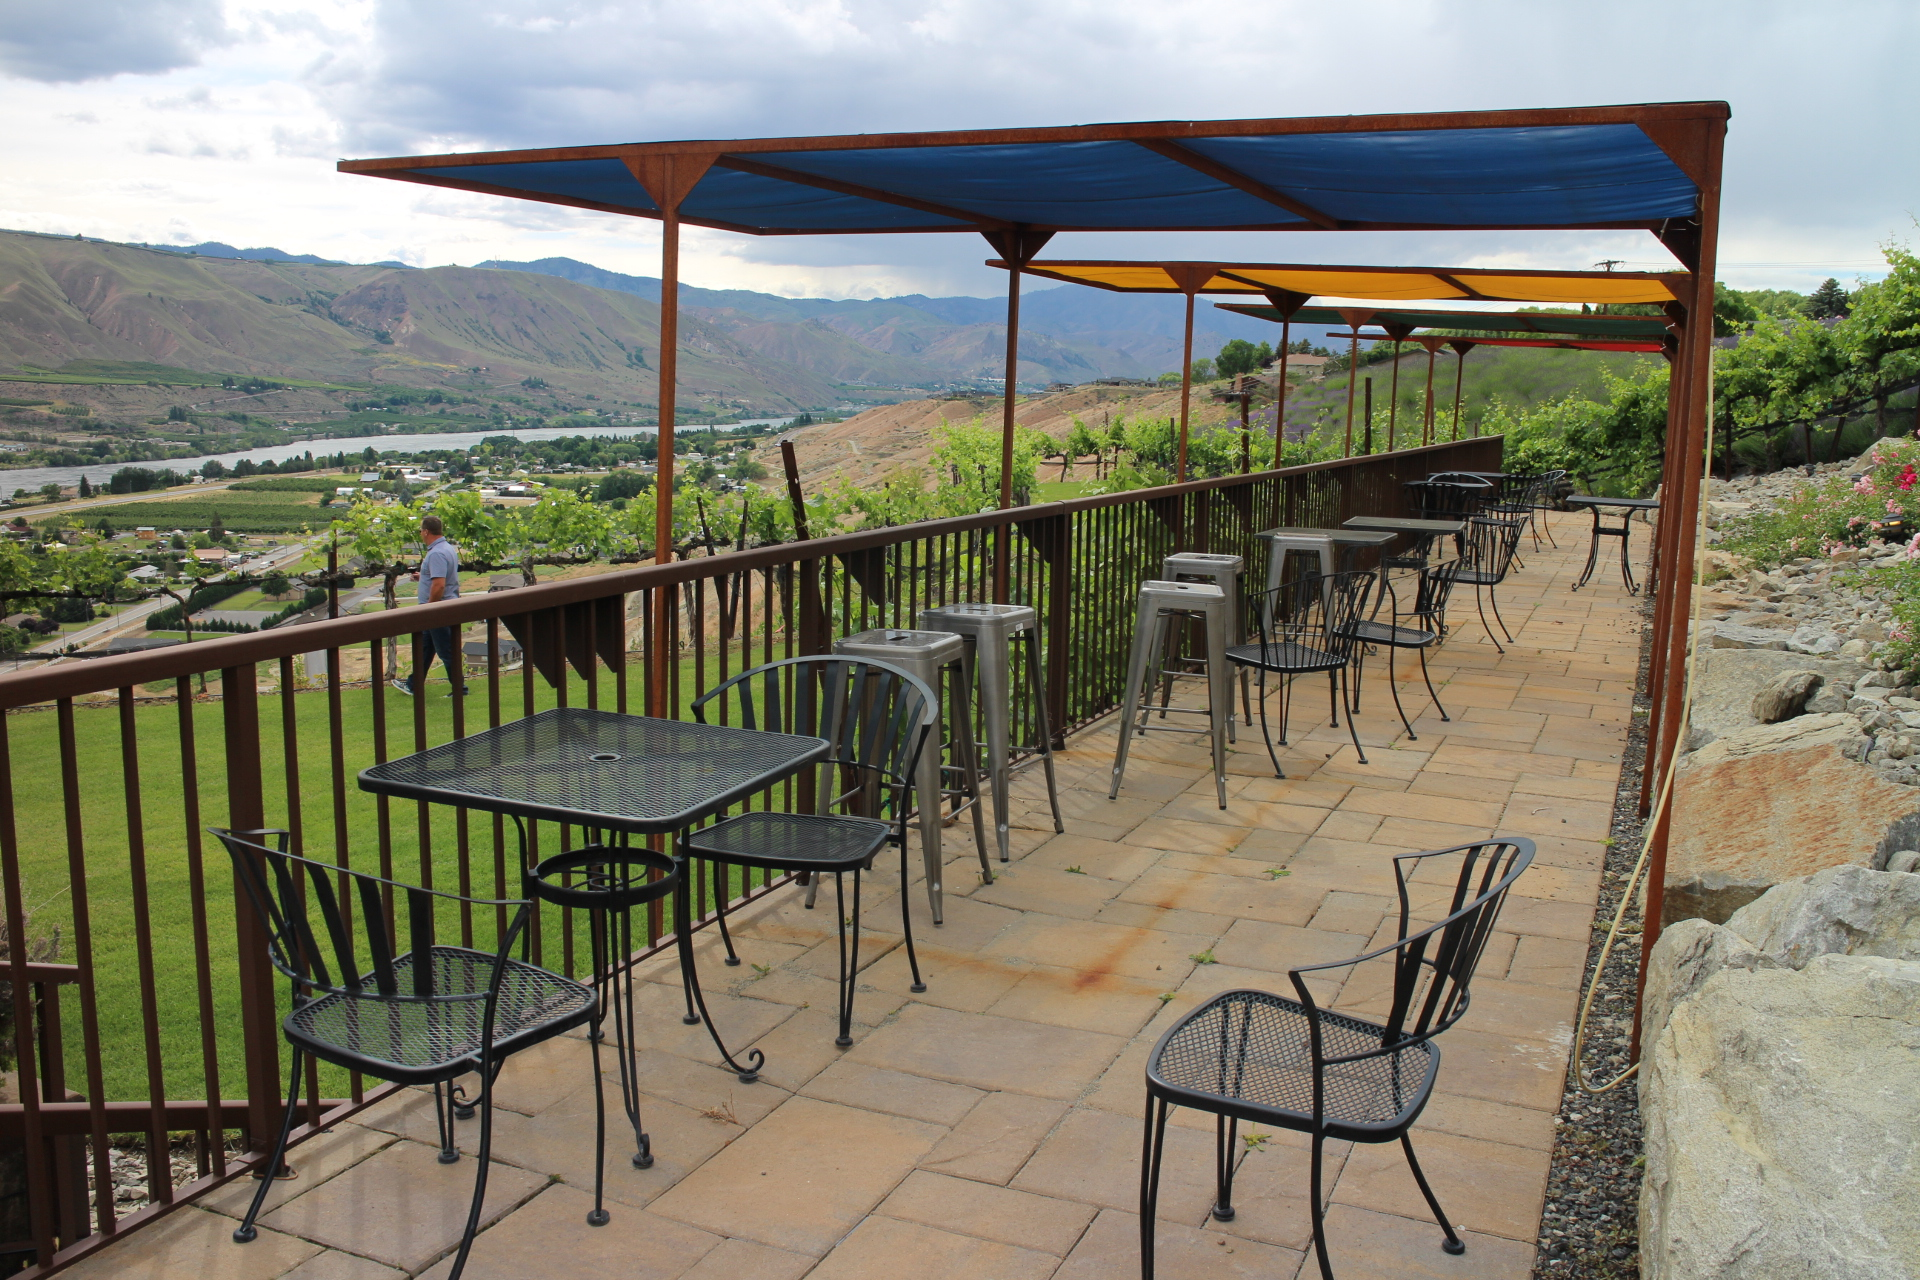 TASTING IN WENATCHEE - Wine tasting in Wenatchee will take you to quaint tasting rooms with spectacular views of the valley and to the downtown core with a lively atmosphere of restaurants and shops. You'll want to check each winery first to see what their seasonal hours may be.